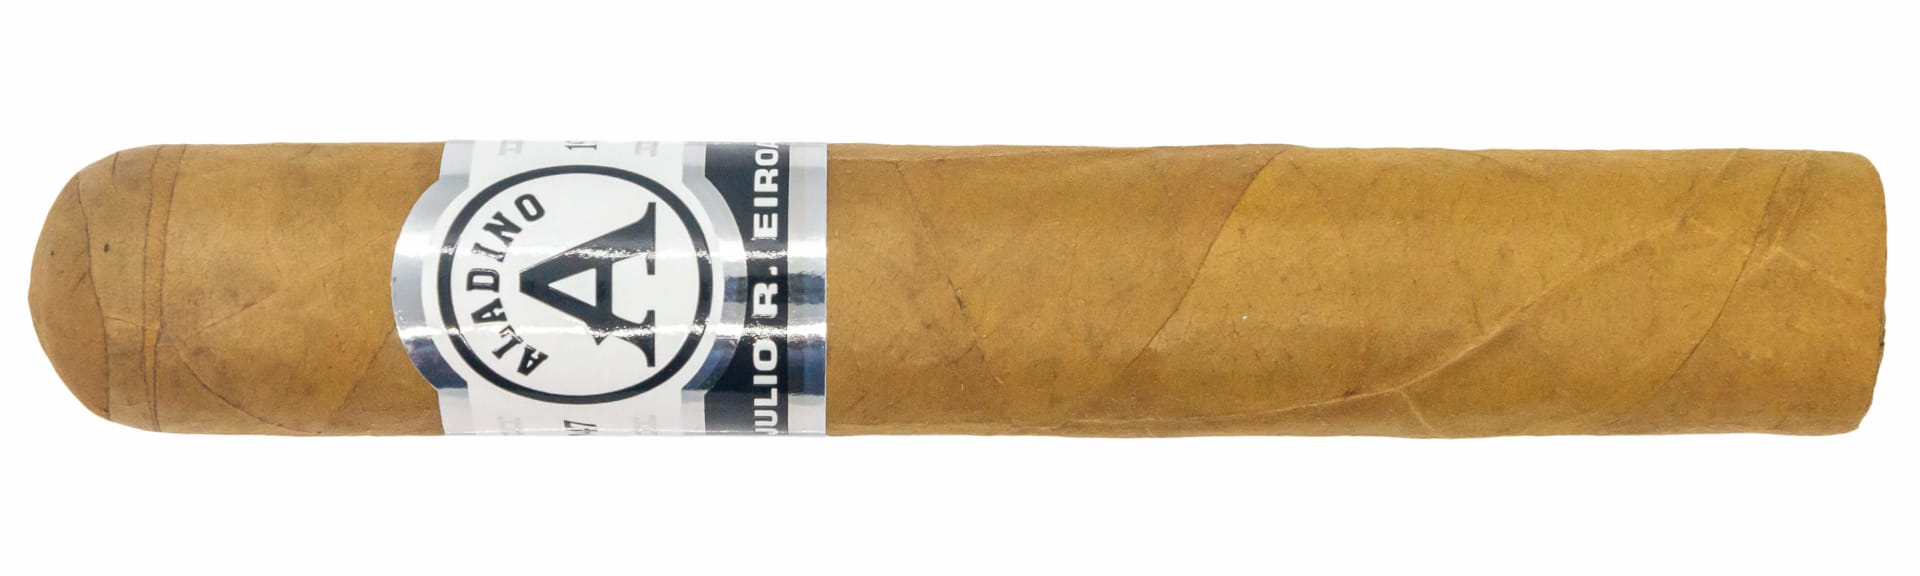 Blind Cigar Review: JRE | Aladino Connecticut Robusto Featured Image